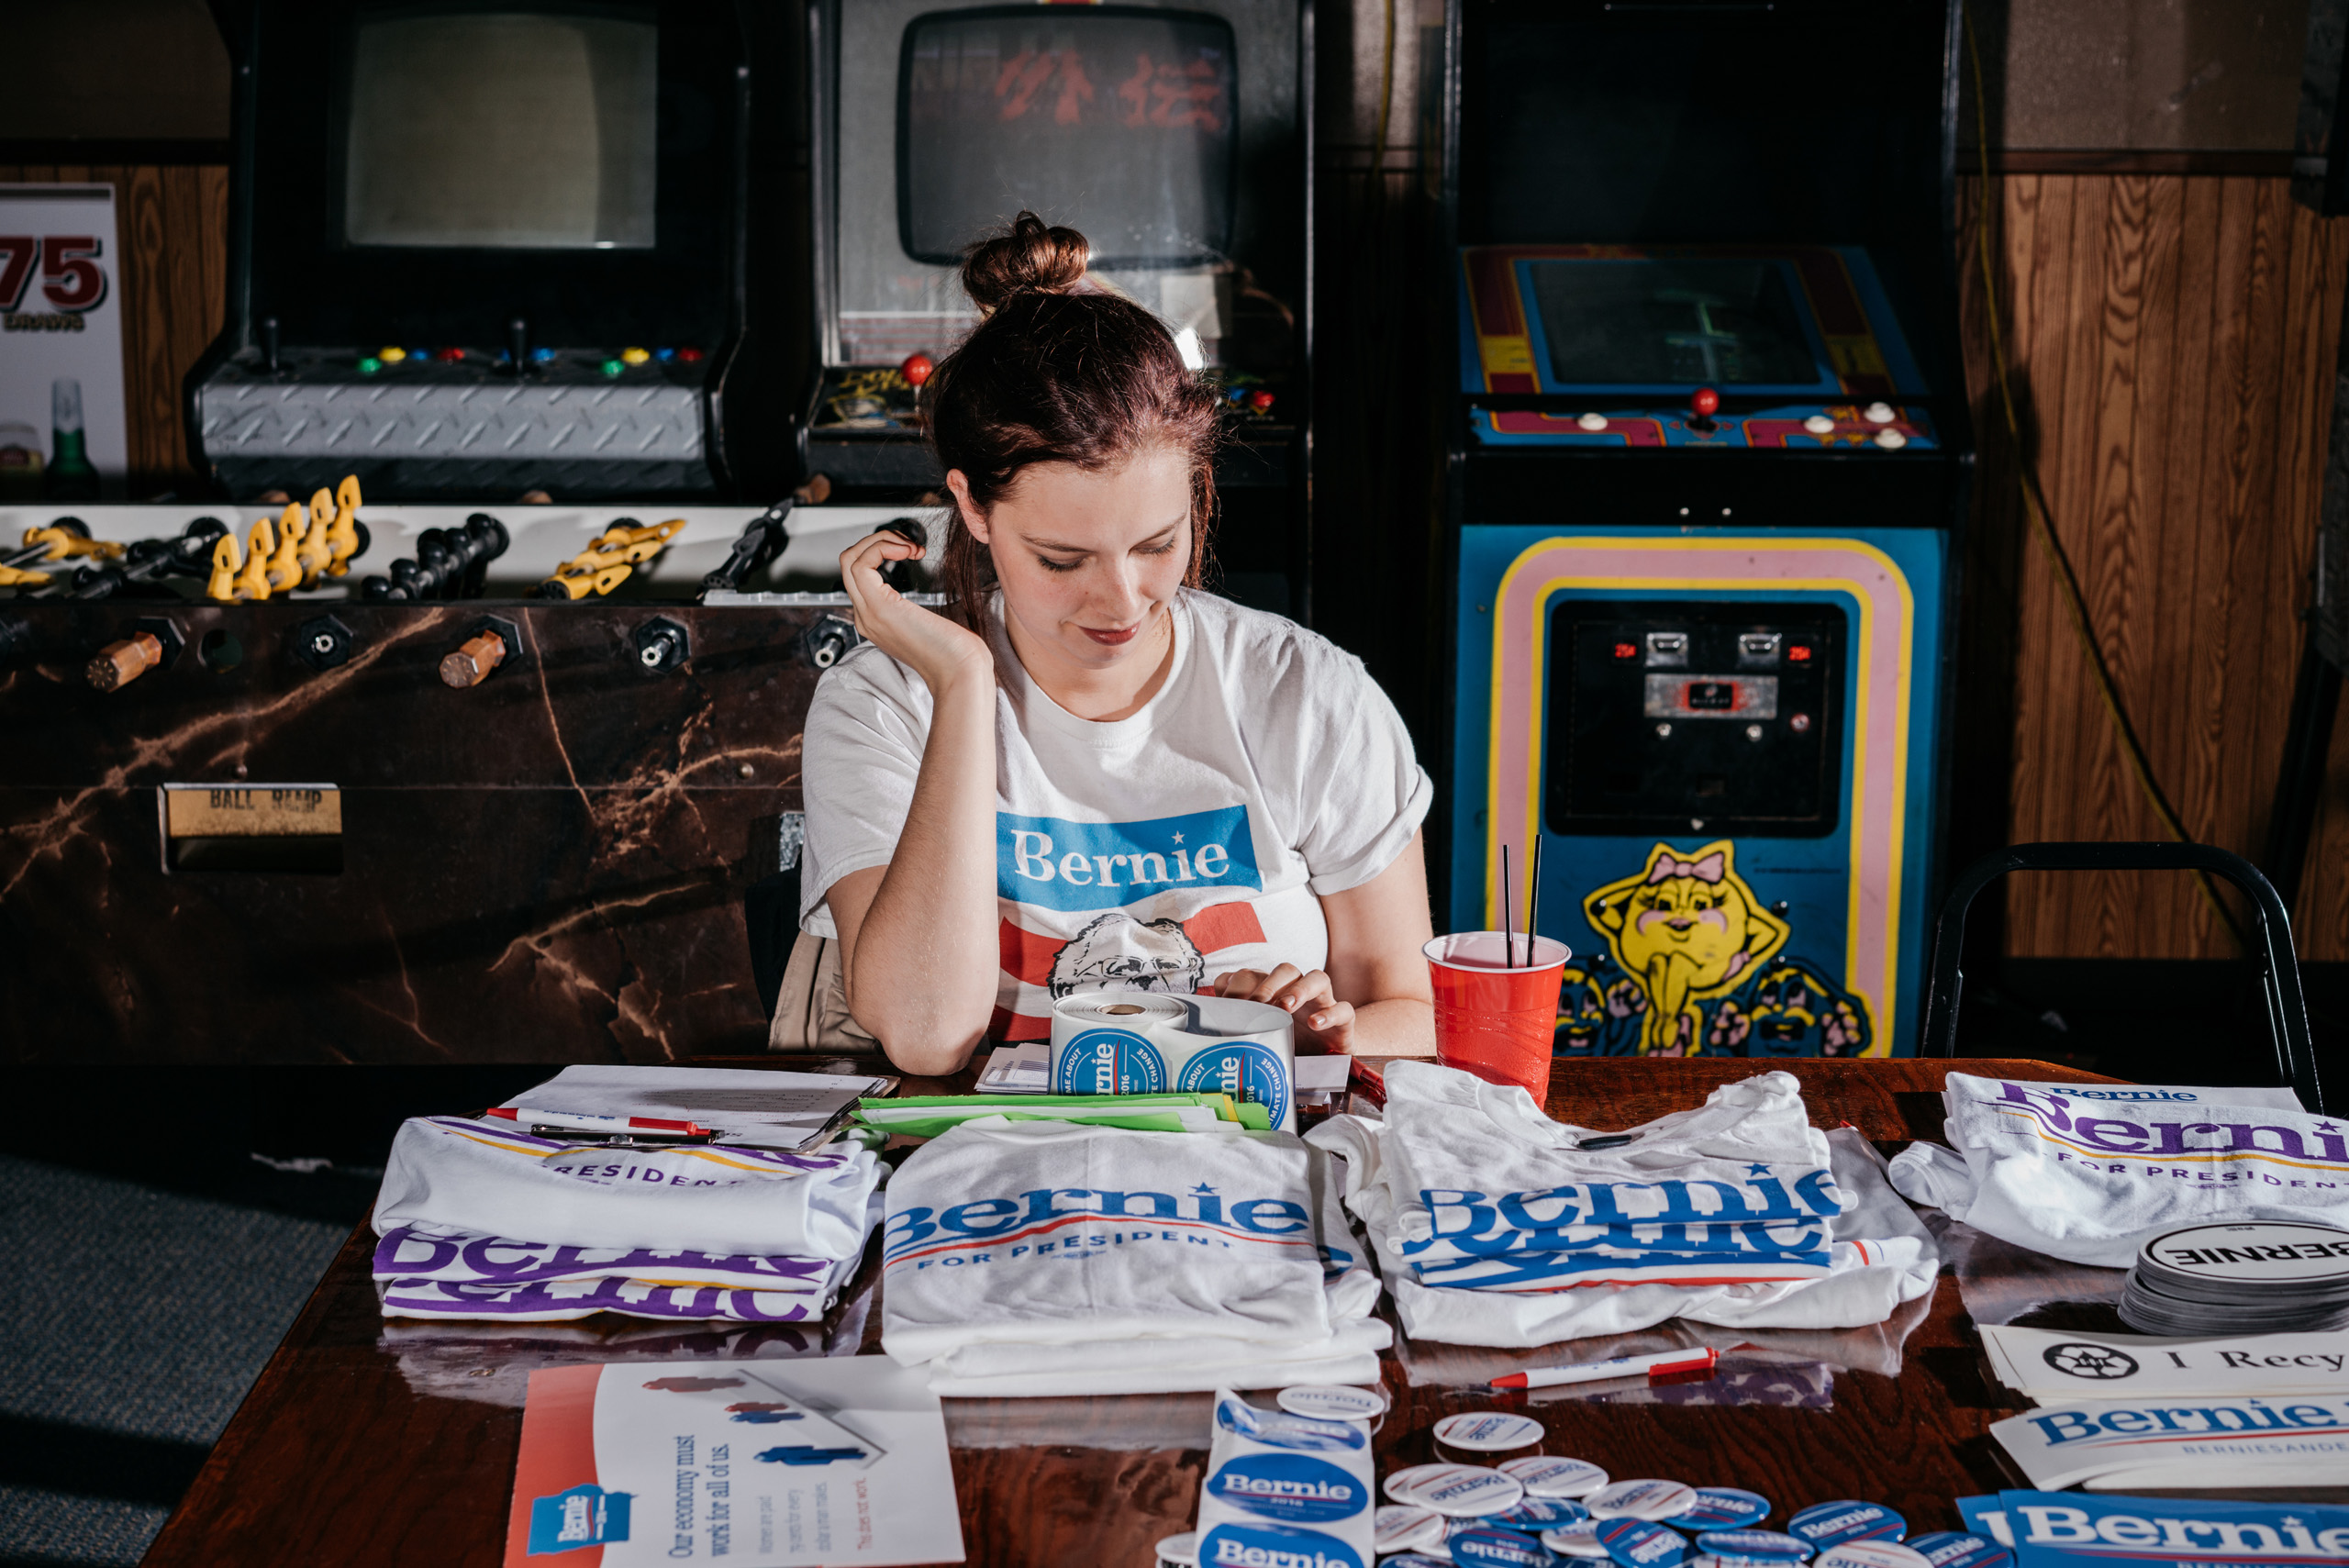 Tori Hall sells T-shirts  at a Bernie Sanders fundraiser billed as  Waterloo Shred for Bernie: Part 2  at The Wedge bar in Waterloo, IA, Saturday January 23, 2016.